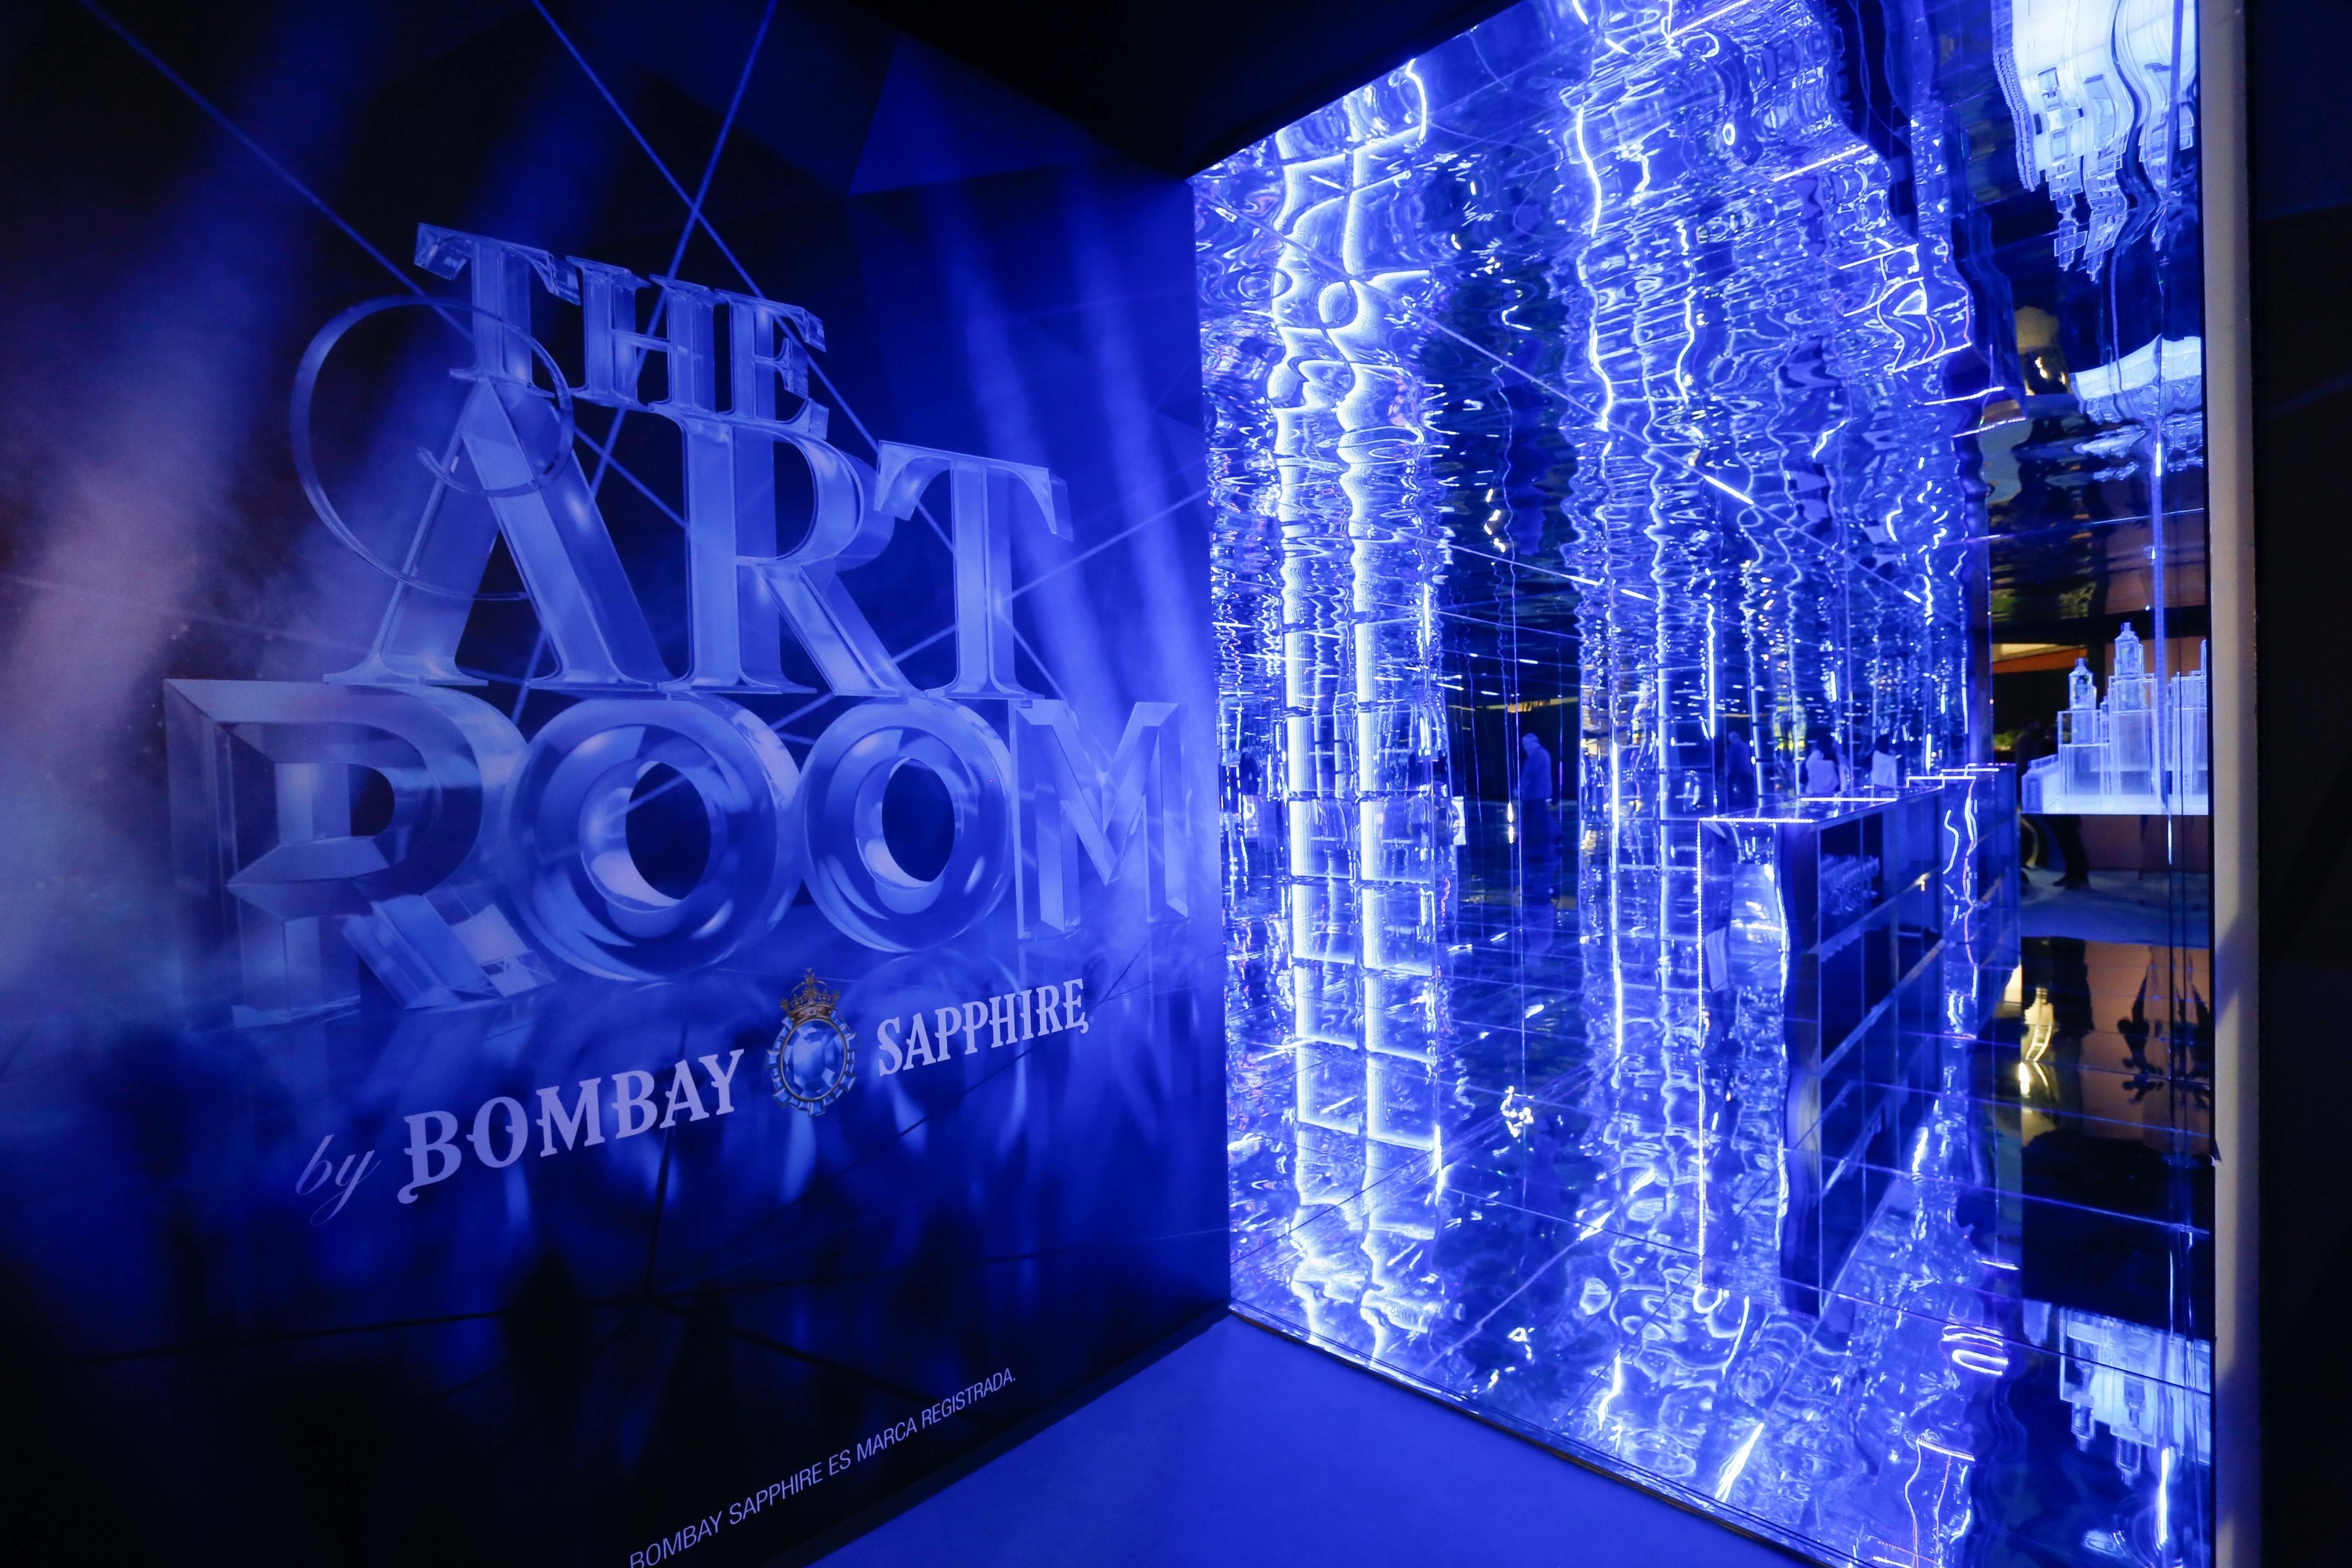 The Art of the Room by Bombay Saphire